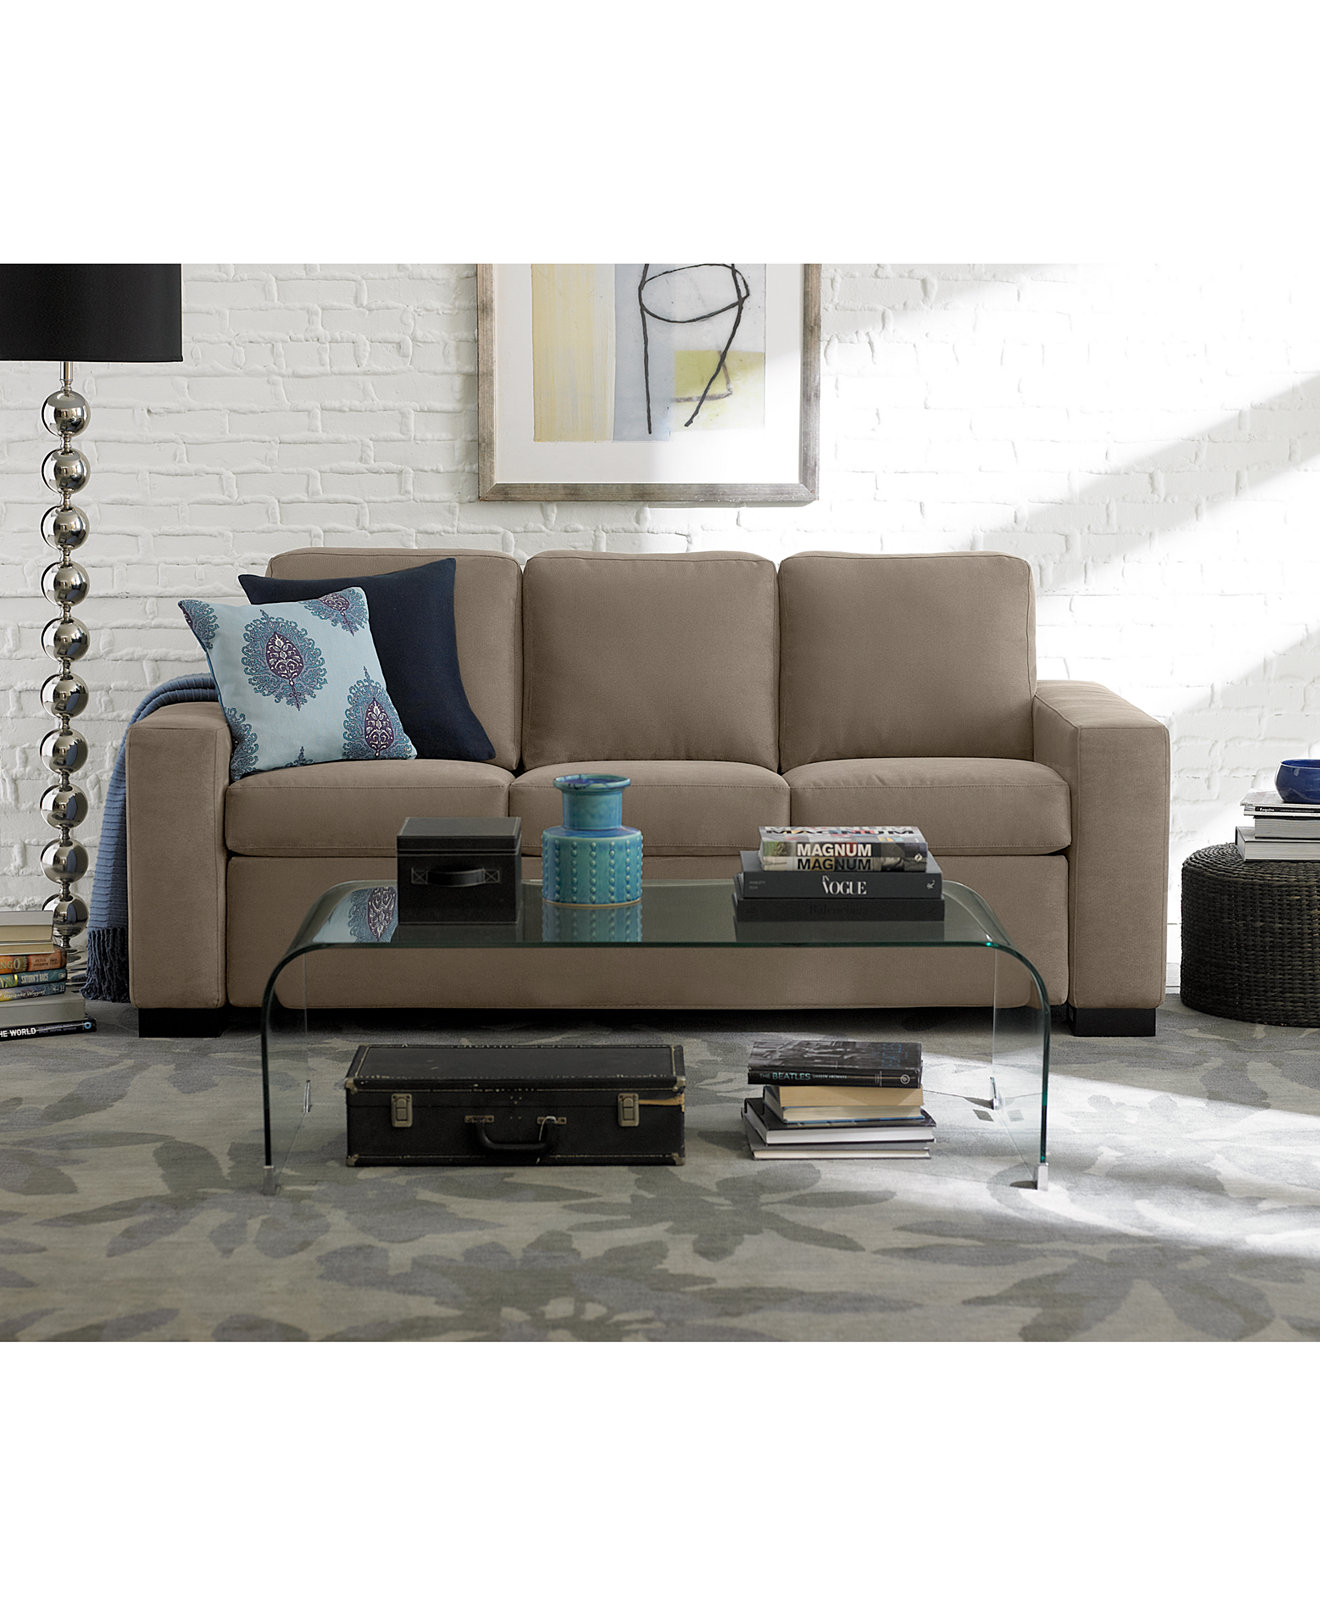 Living Room Furniture Pieces Modern Living Room Furniture Shop Modern Living Room Furniture